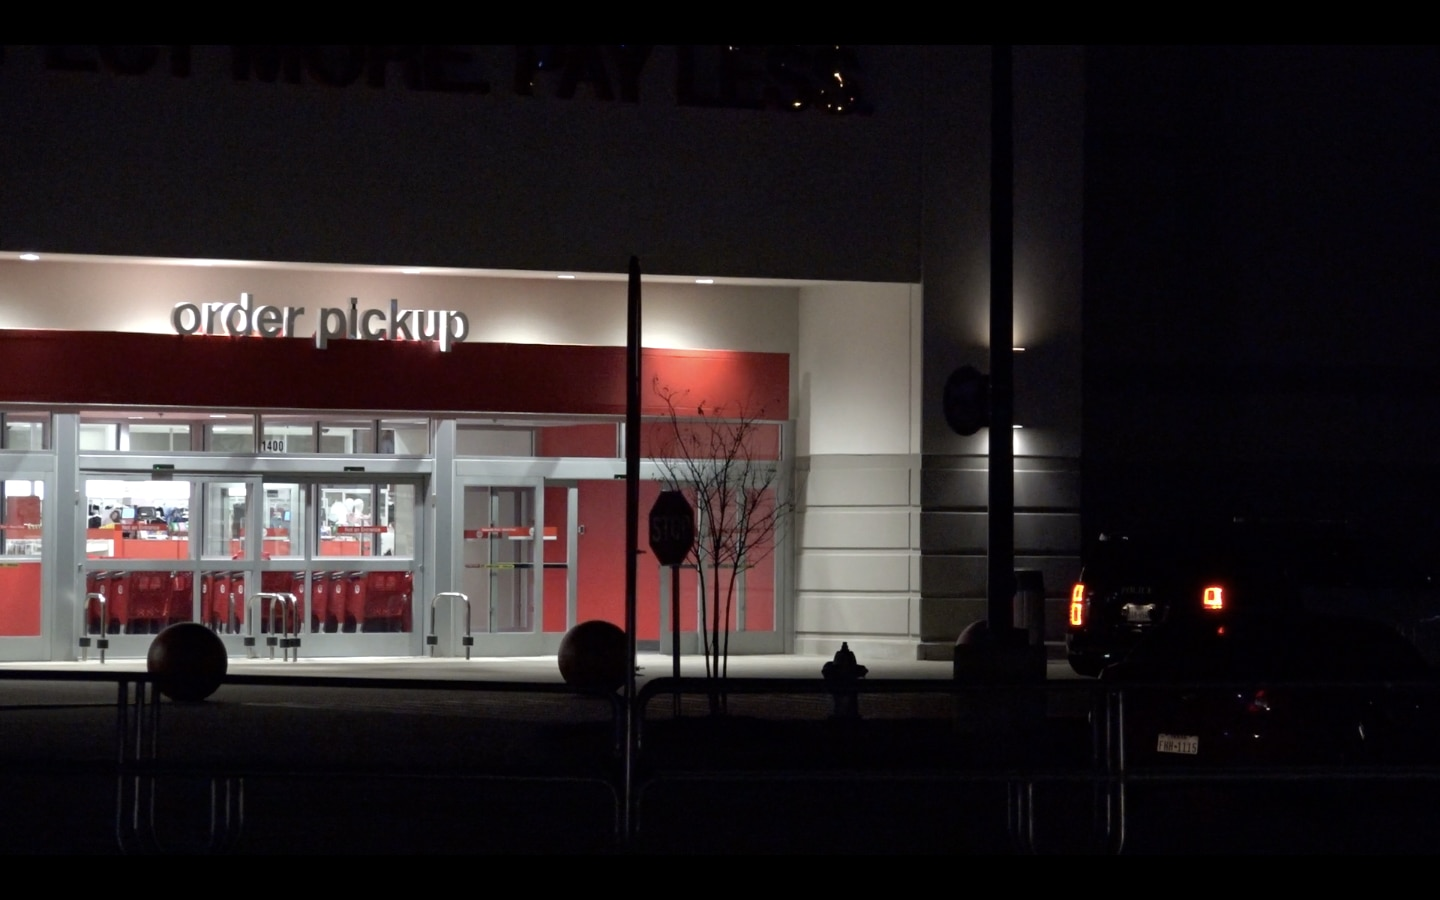 An hour-long search at a Target store in Hurst produced no suspects in a burglary that occurred there around 4:30 a.m.